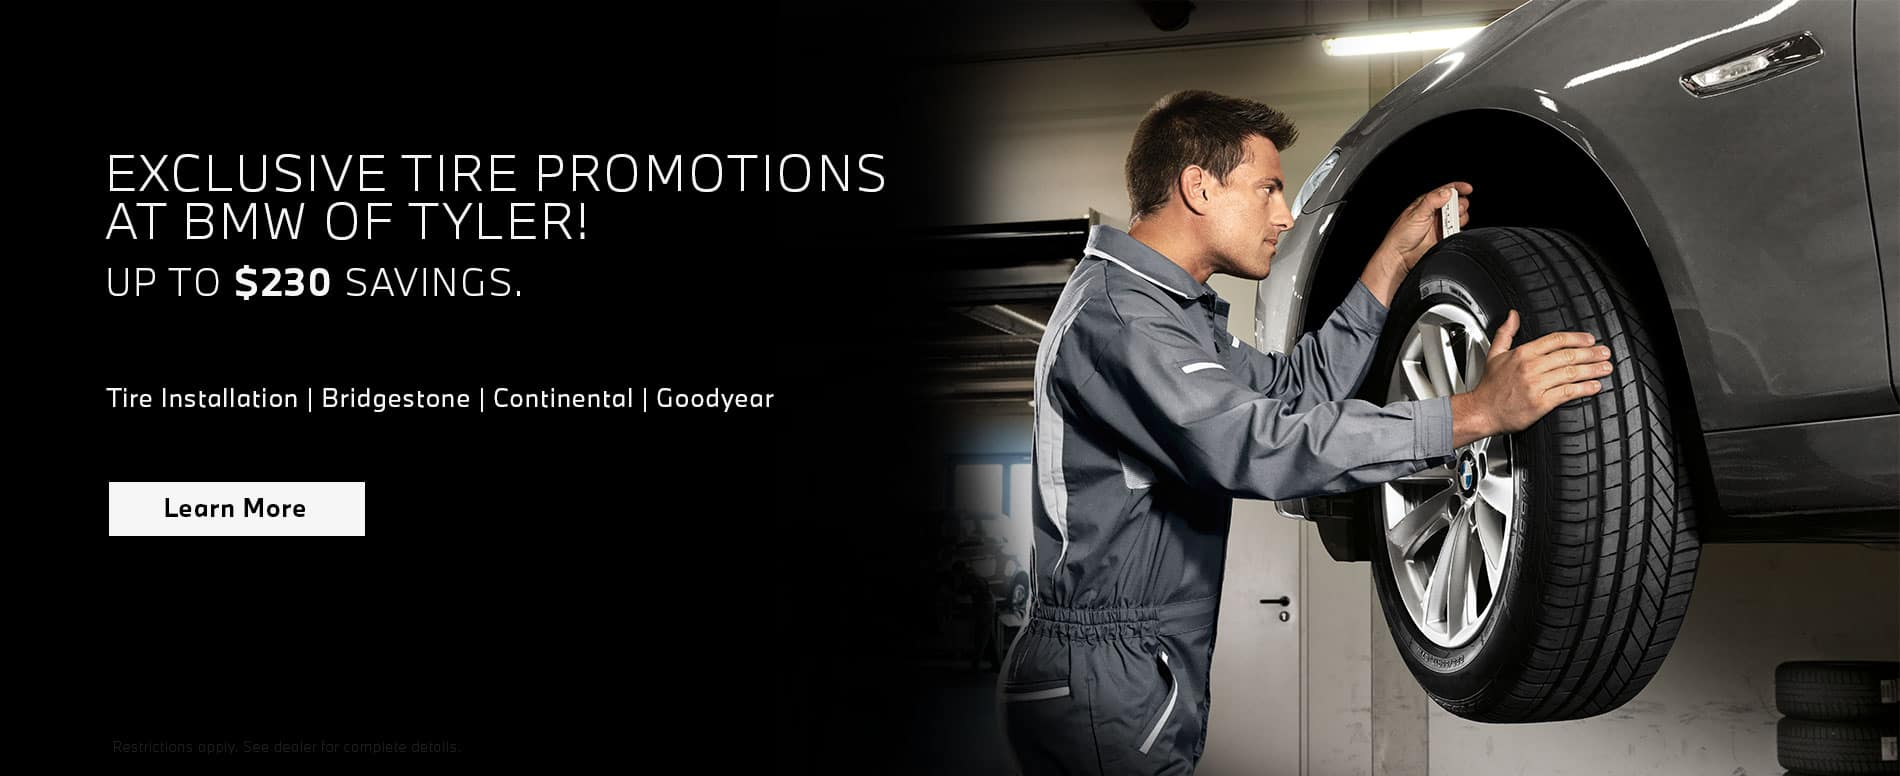 Exclusive tire promotions at BMW of Tyler. Click to learn more. Image of service man inspecting tires.